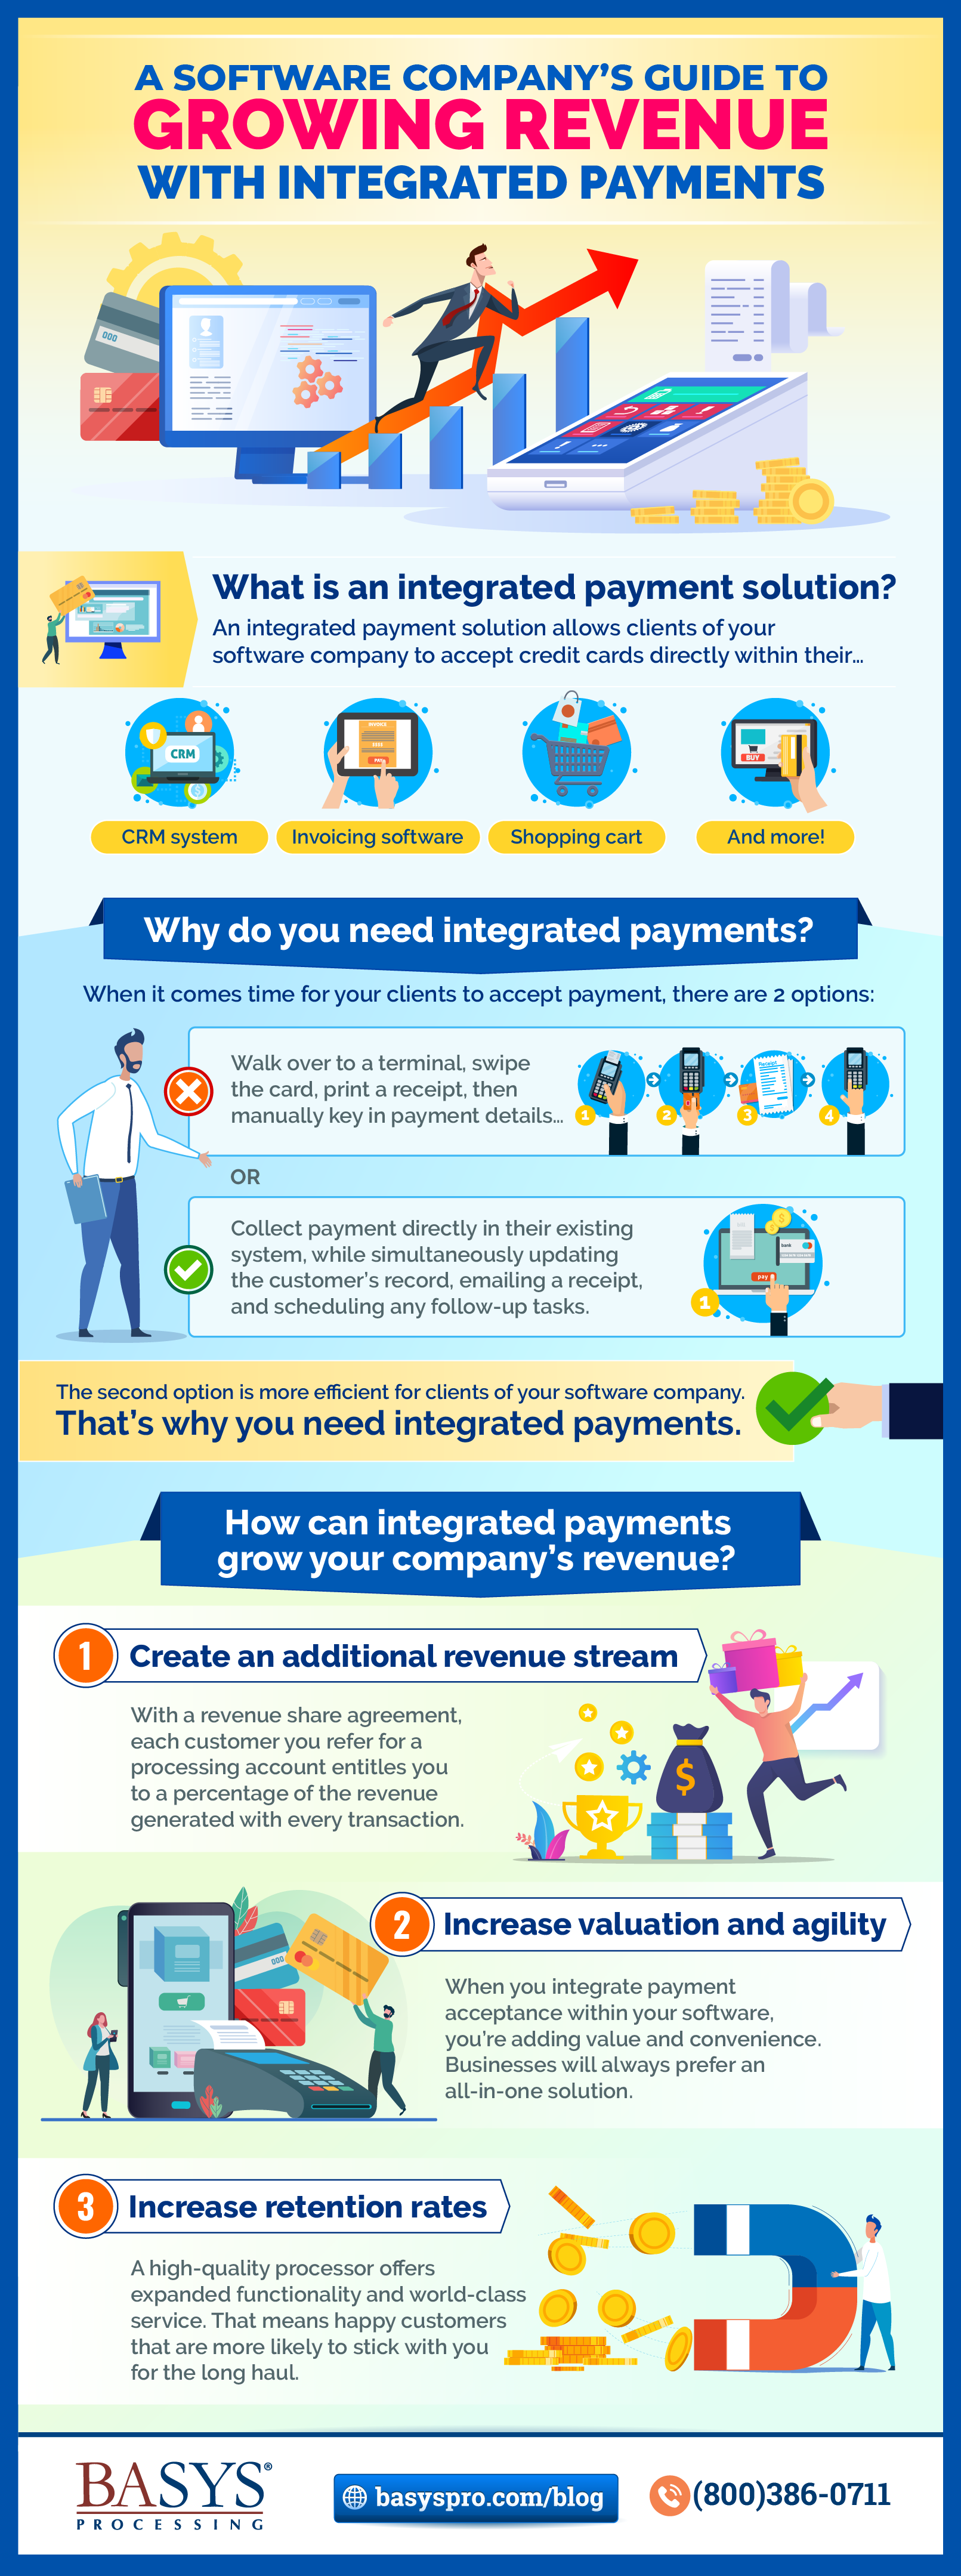 A Software Company's Guide to Growing Revenue with Integrated Payments